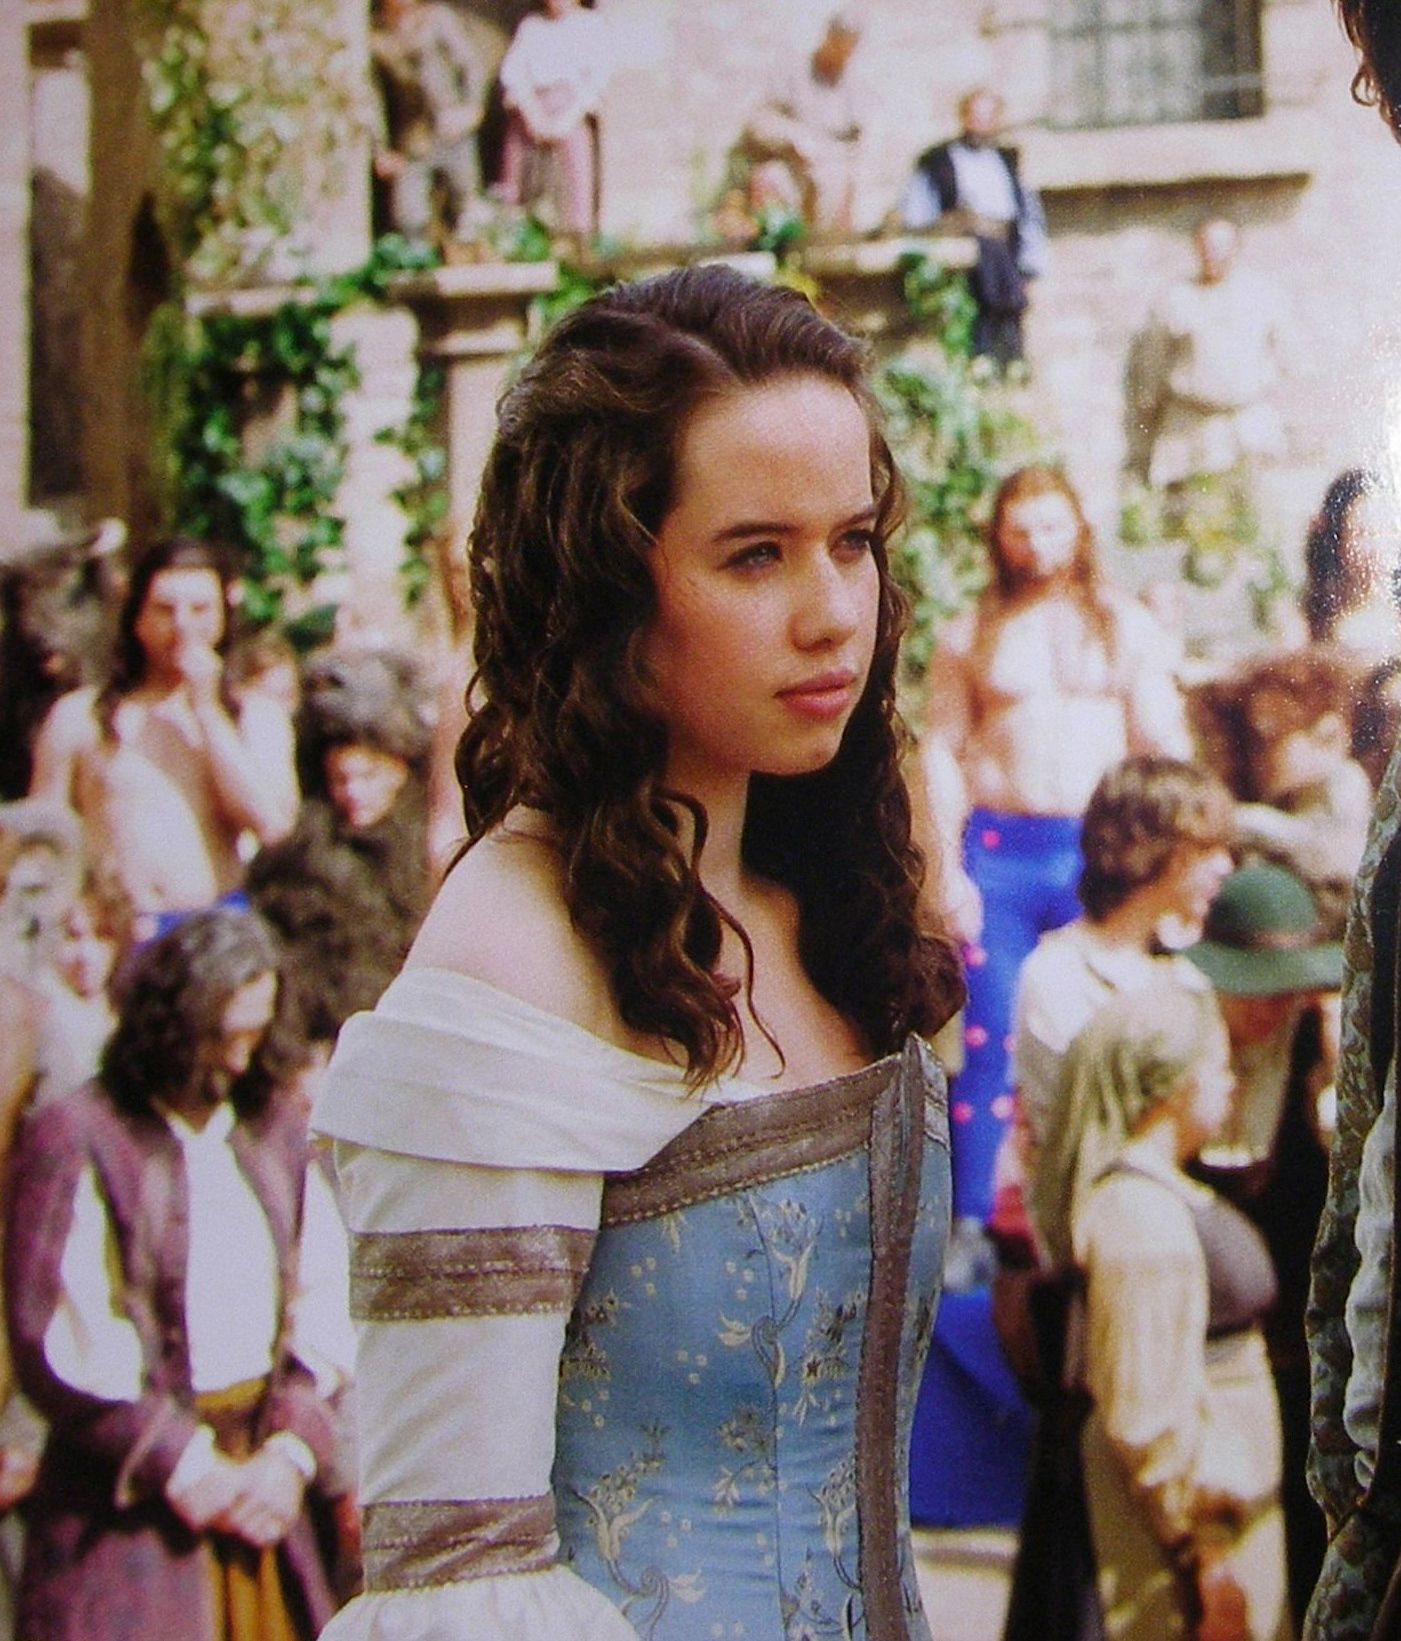 Susan Pevensey - the most controversial character in the novel The Chronicles of Narnia 60